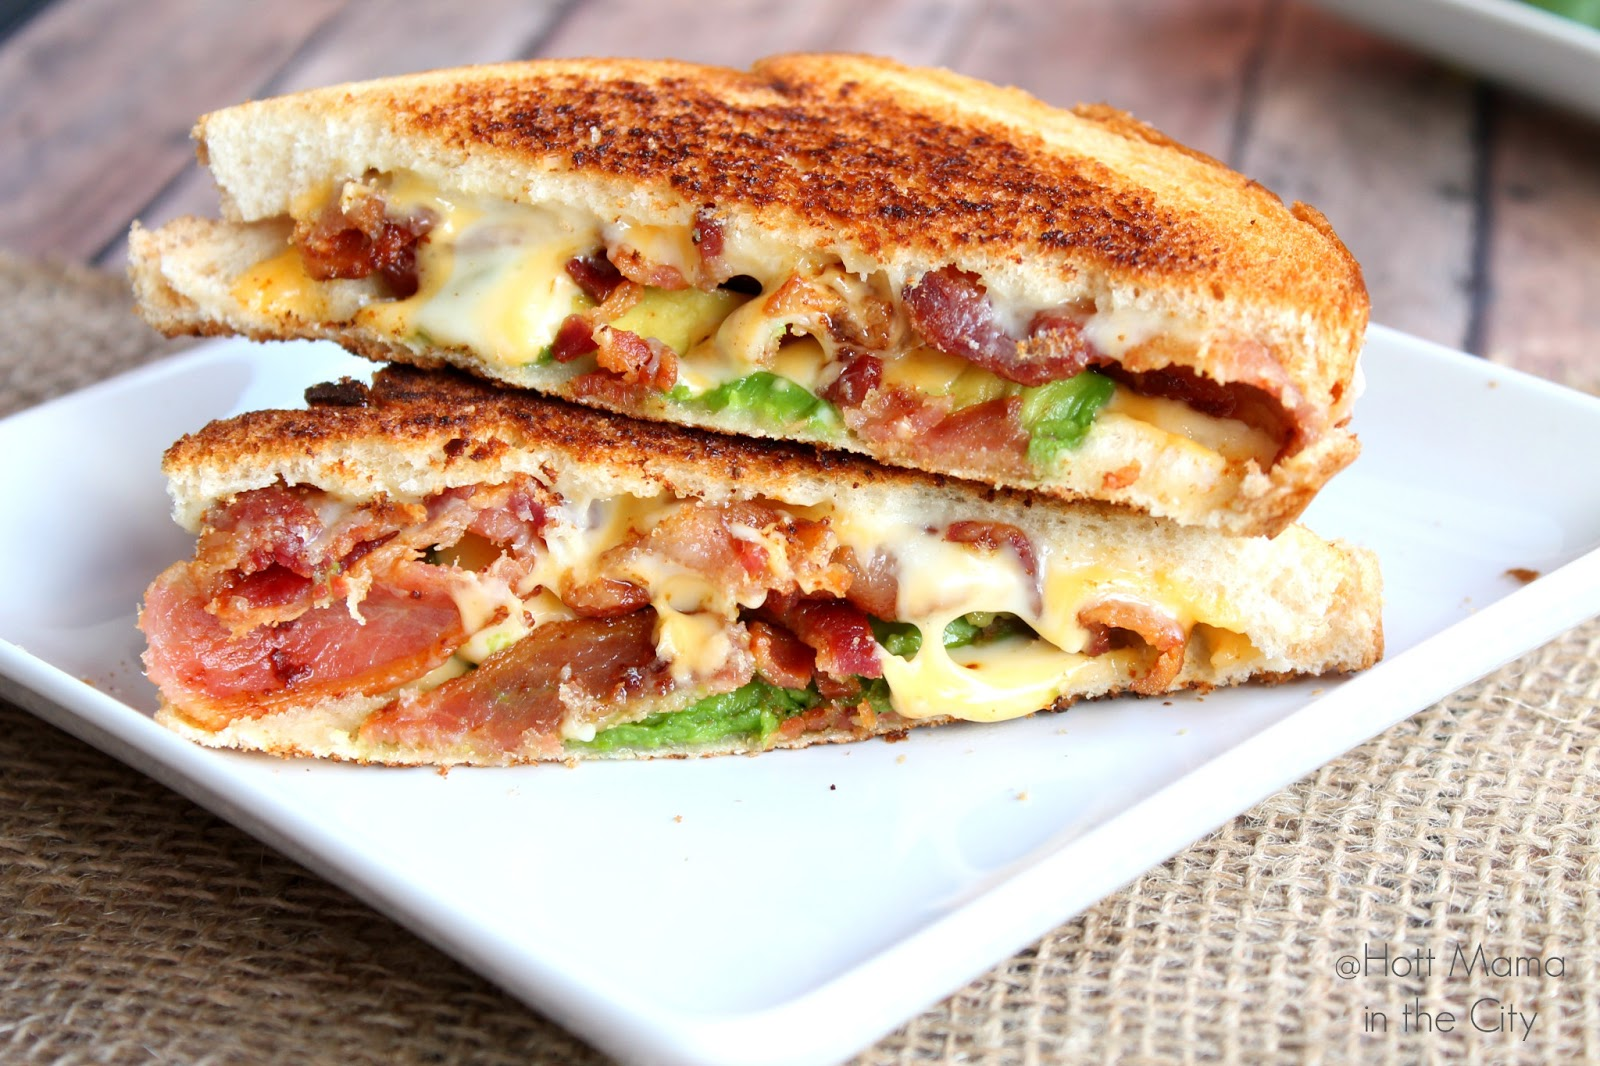 Hot Mama In The City: Bacon Avocado Grill Cheese Recipe